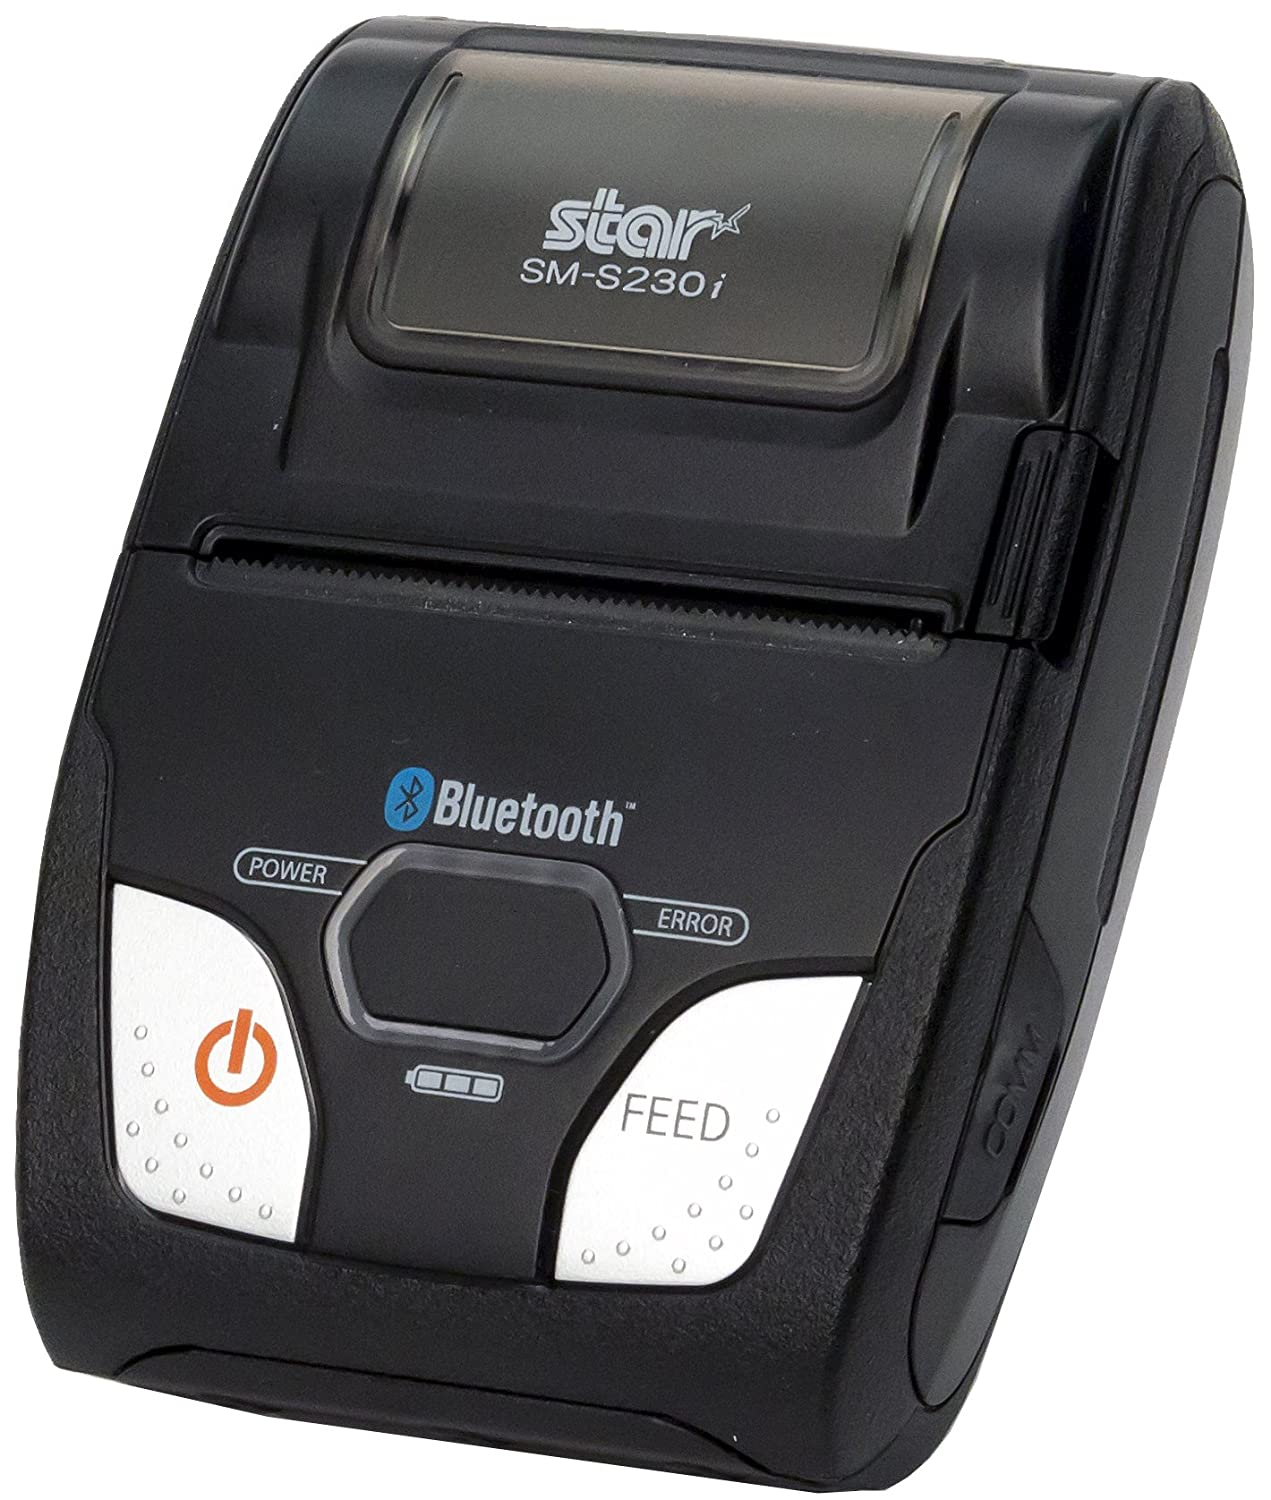 Star Micronics SM-S230i Compact and Portable Bluetooth/USB Receipt Printer with Tear Bar - Supports iOS, Android, Windows